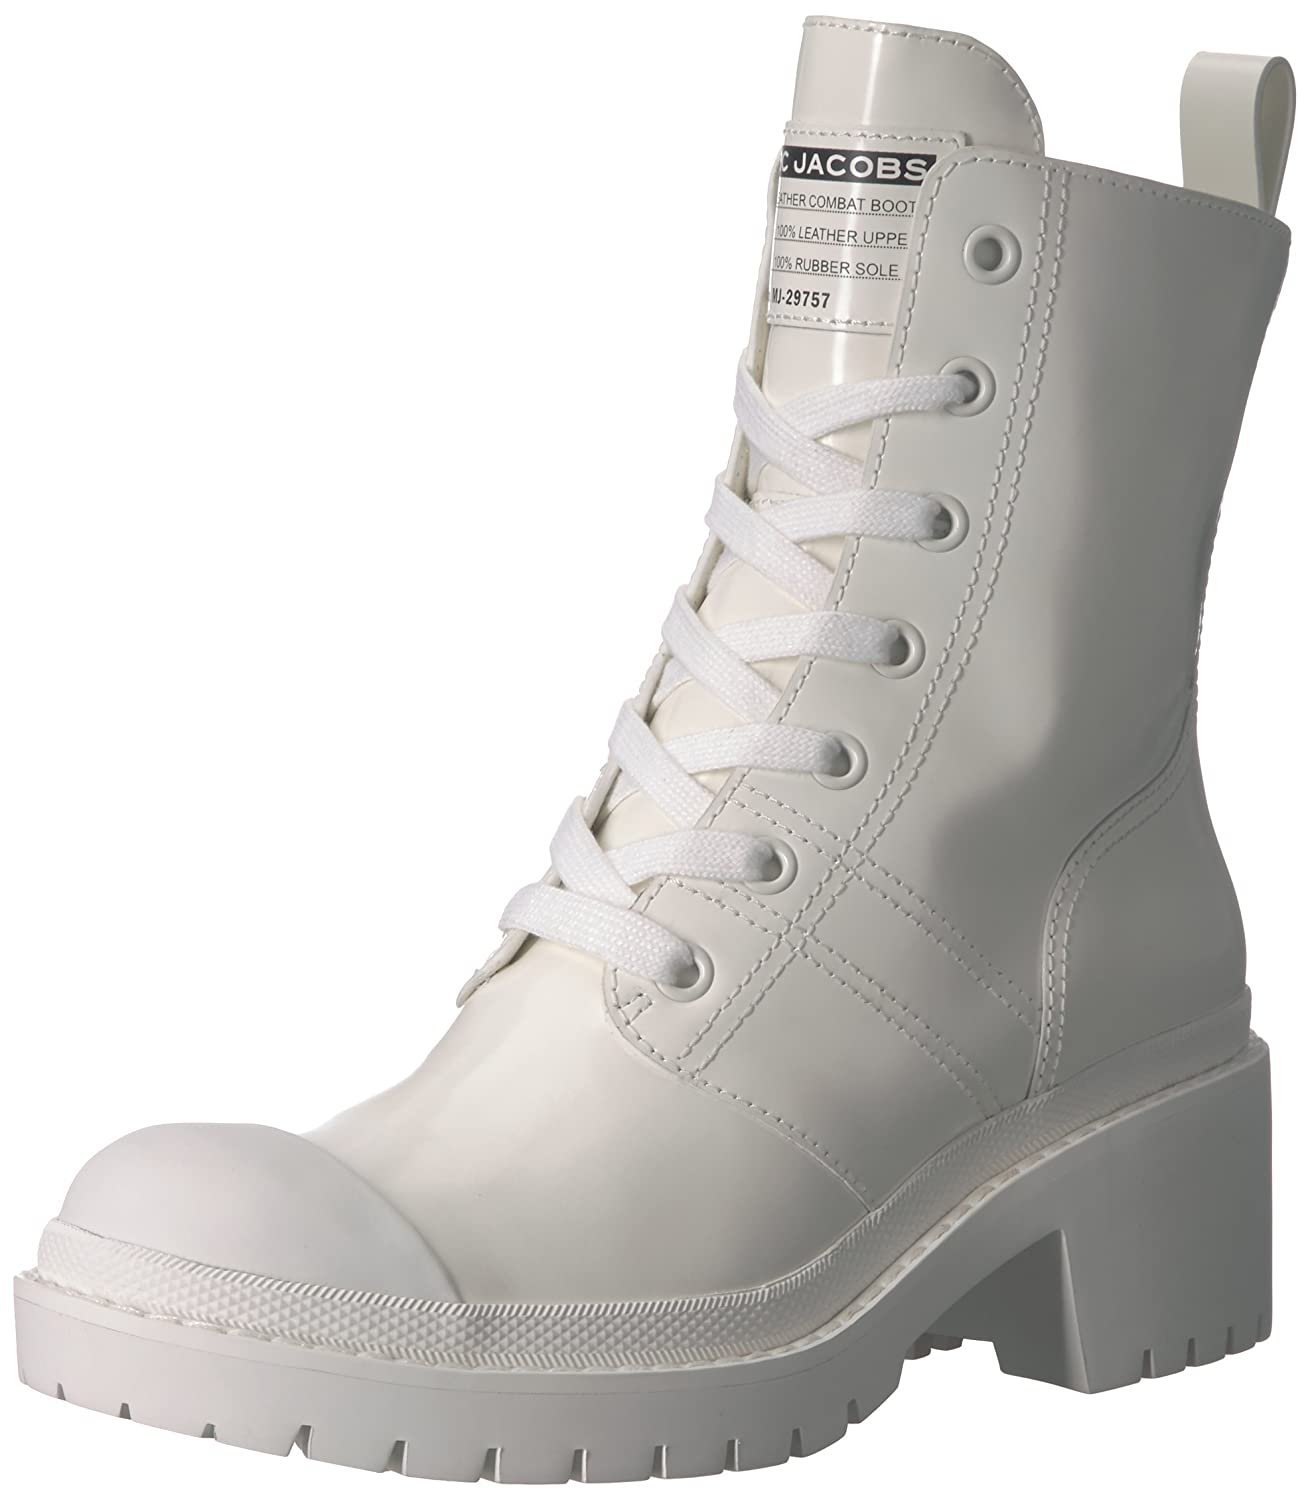 Marc Jacobs Women's Bristol Laced Ankle Boot B07822SR7F 37.5 M EU (7.5 US)|White